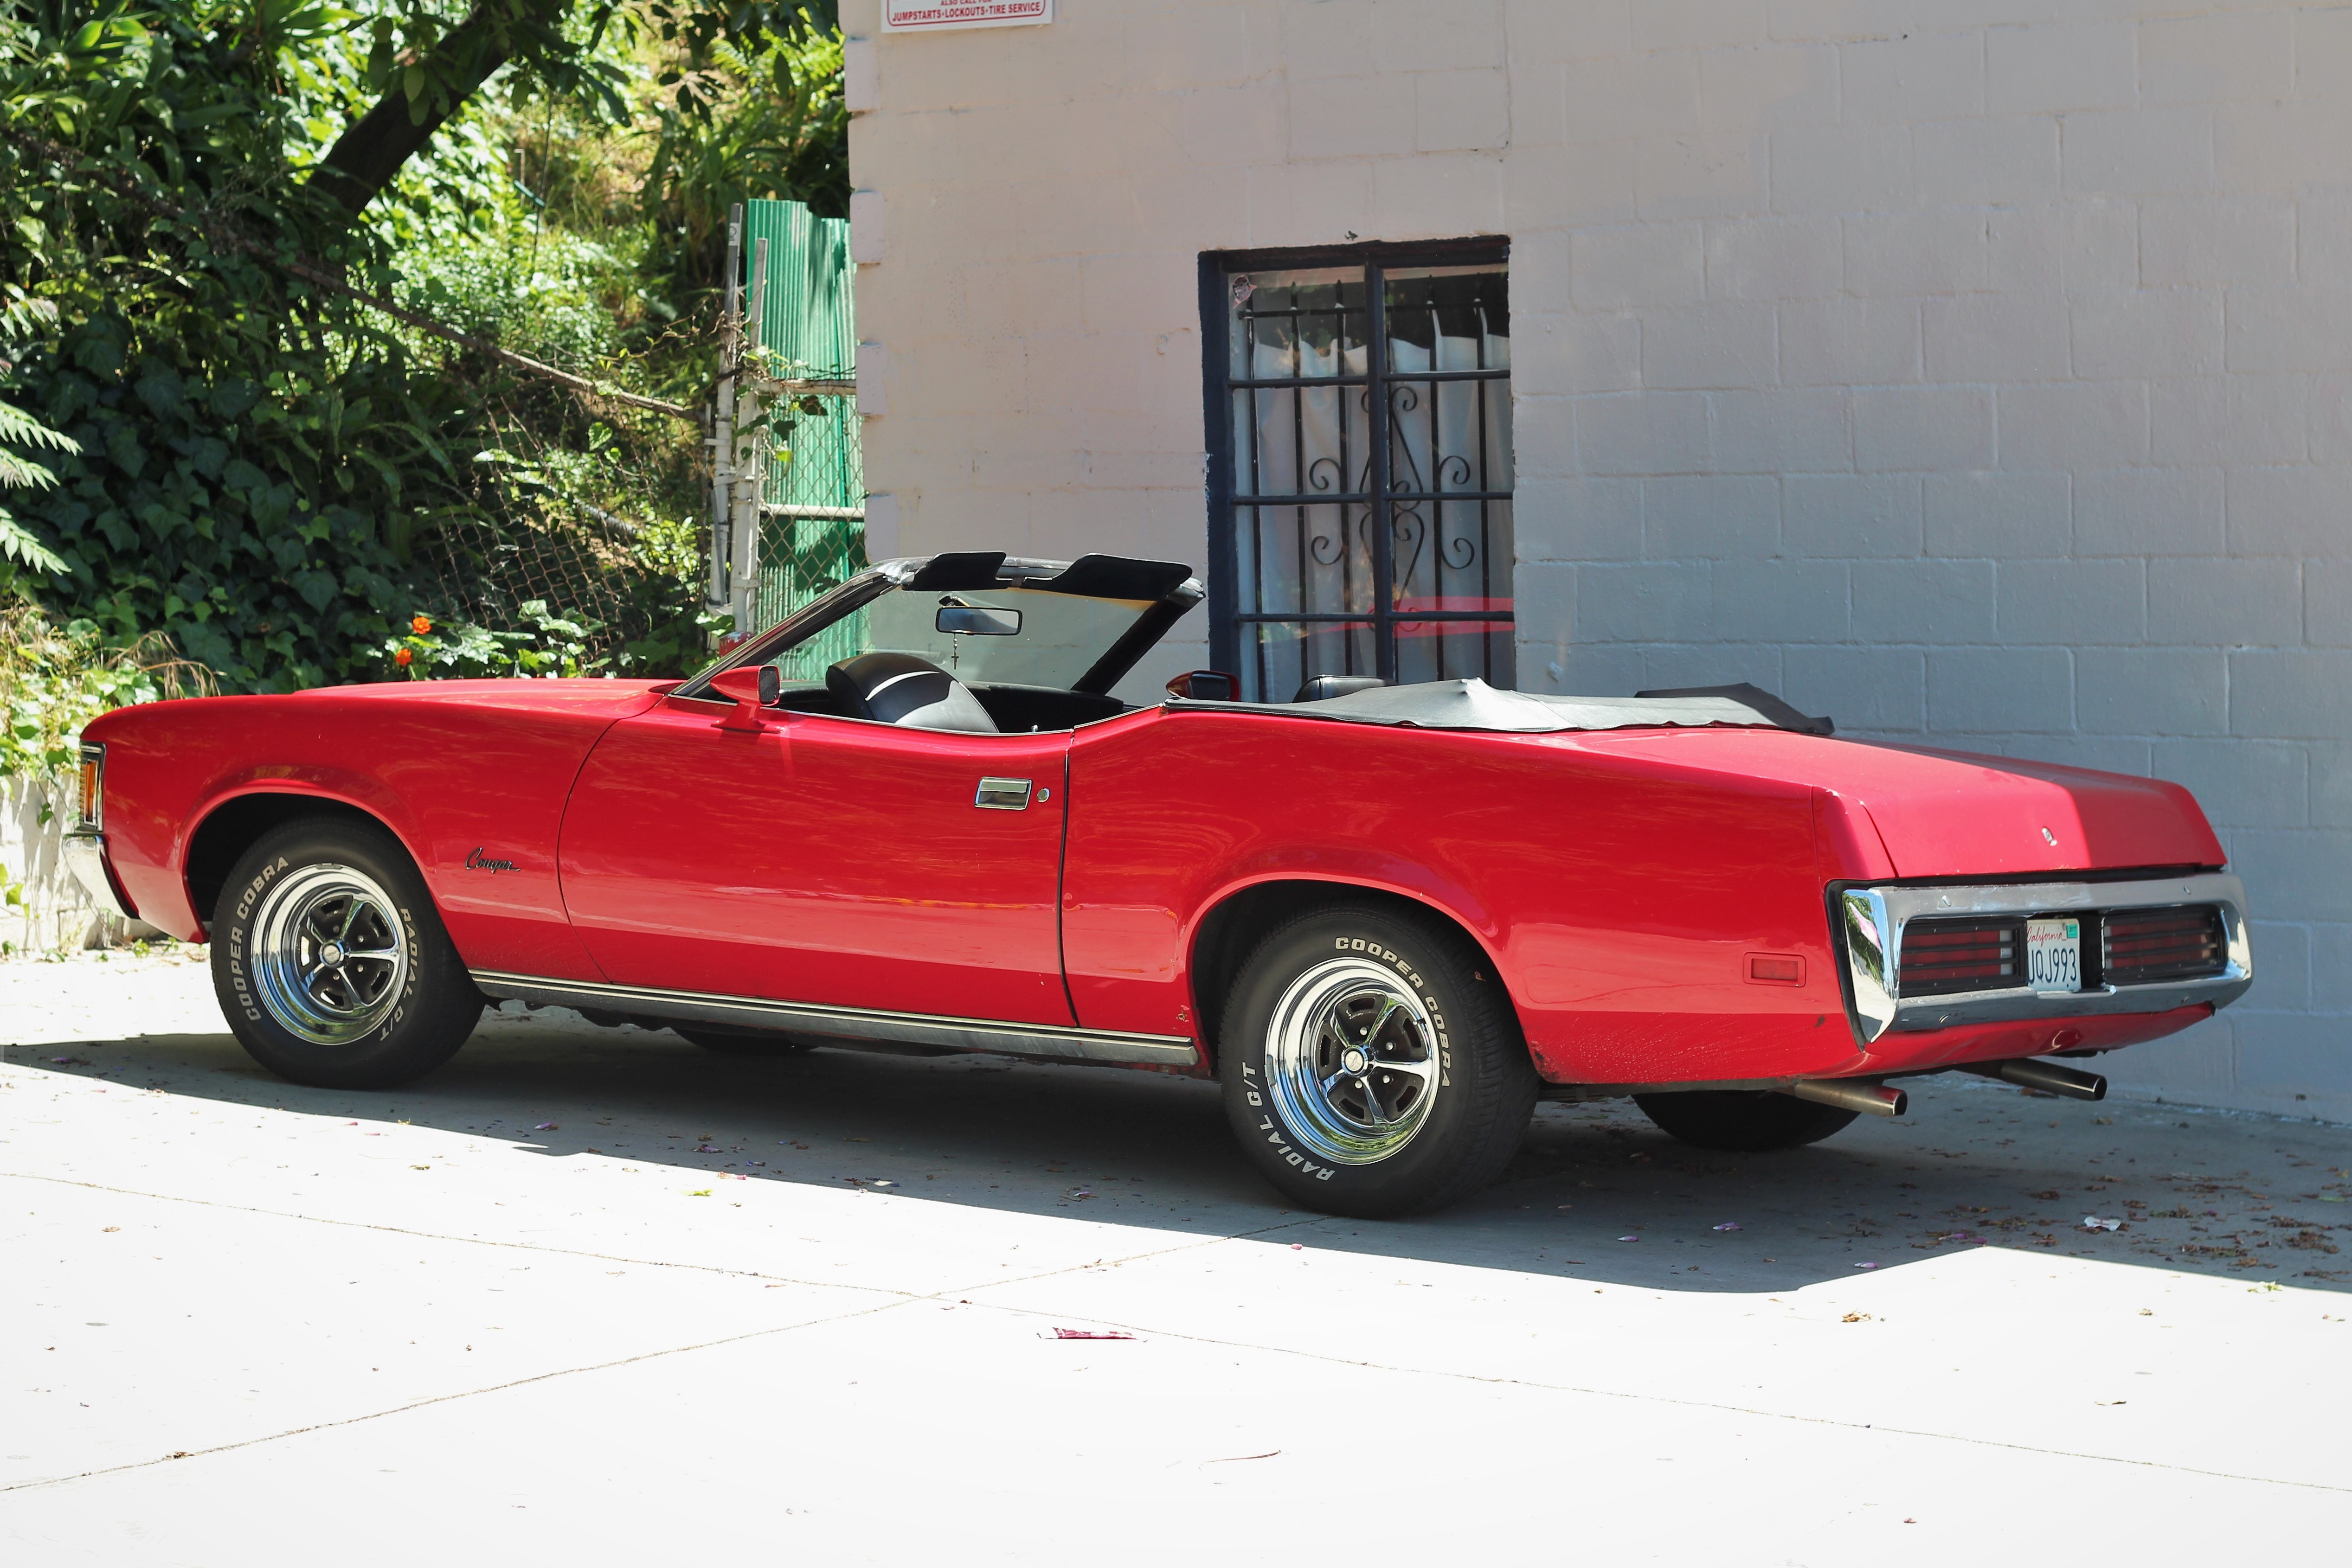 25 1971 mercury cougar convertible 3 la car spotting. Black Bedroom Furniture Sets. Home Design Ideas